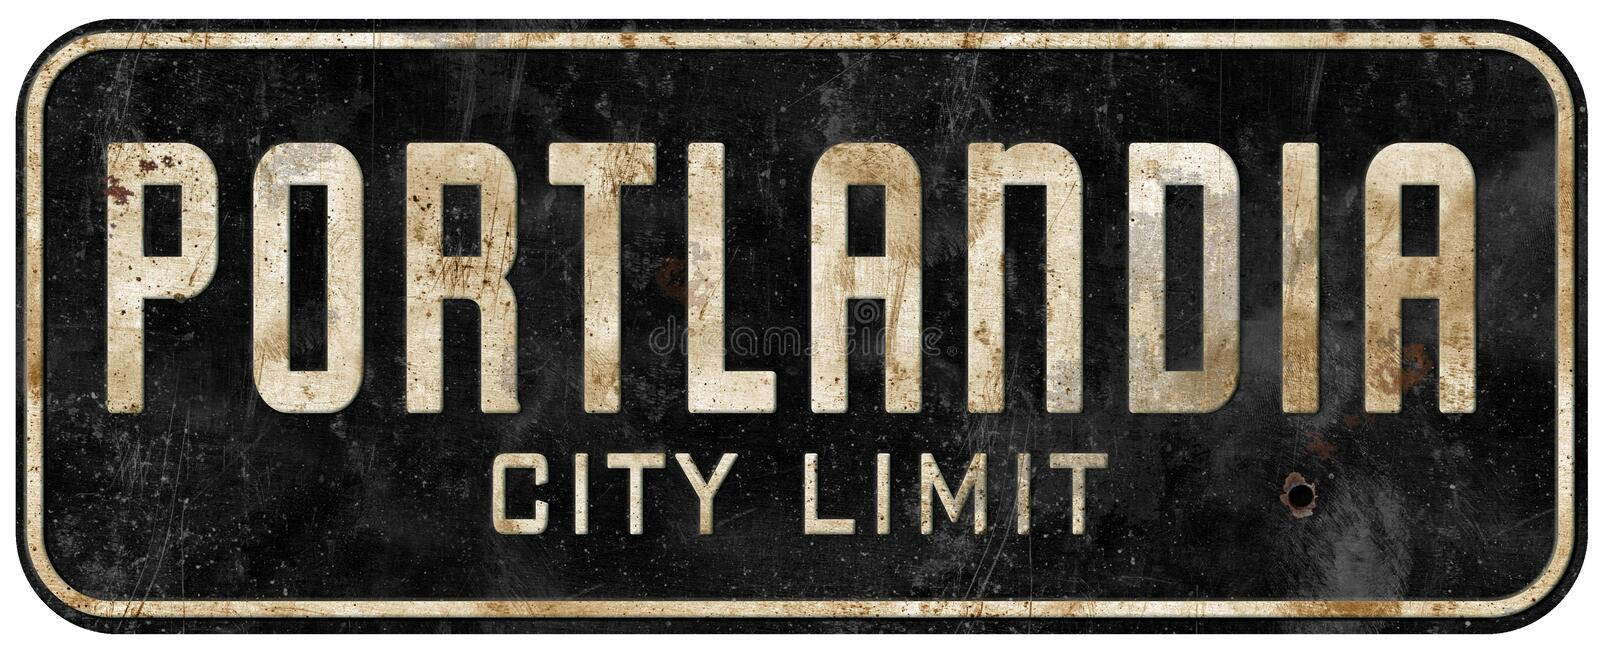 Portland Oregon Portlandia city limit sign grunge vintage royalty free stock image